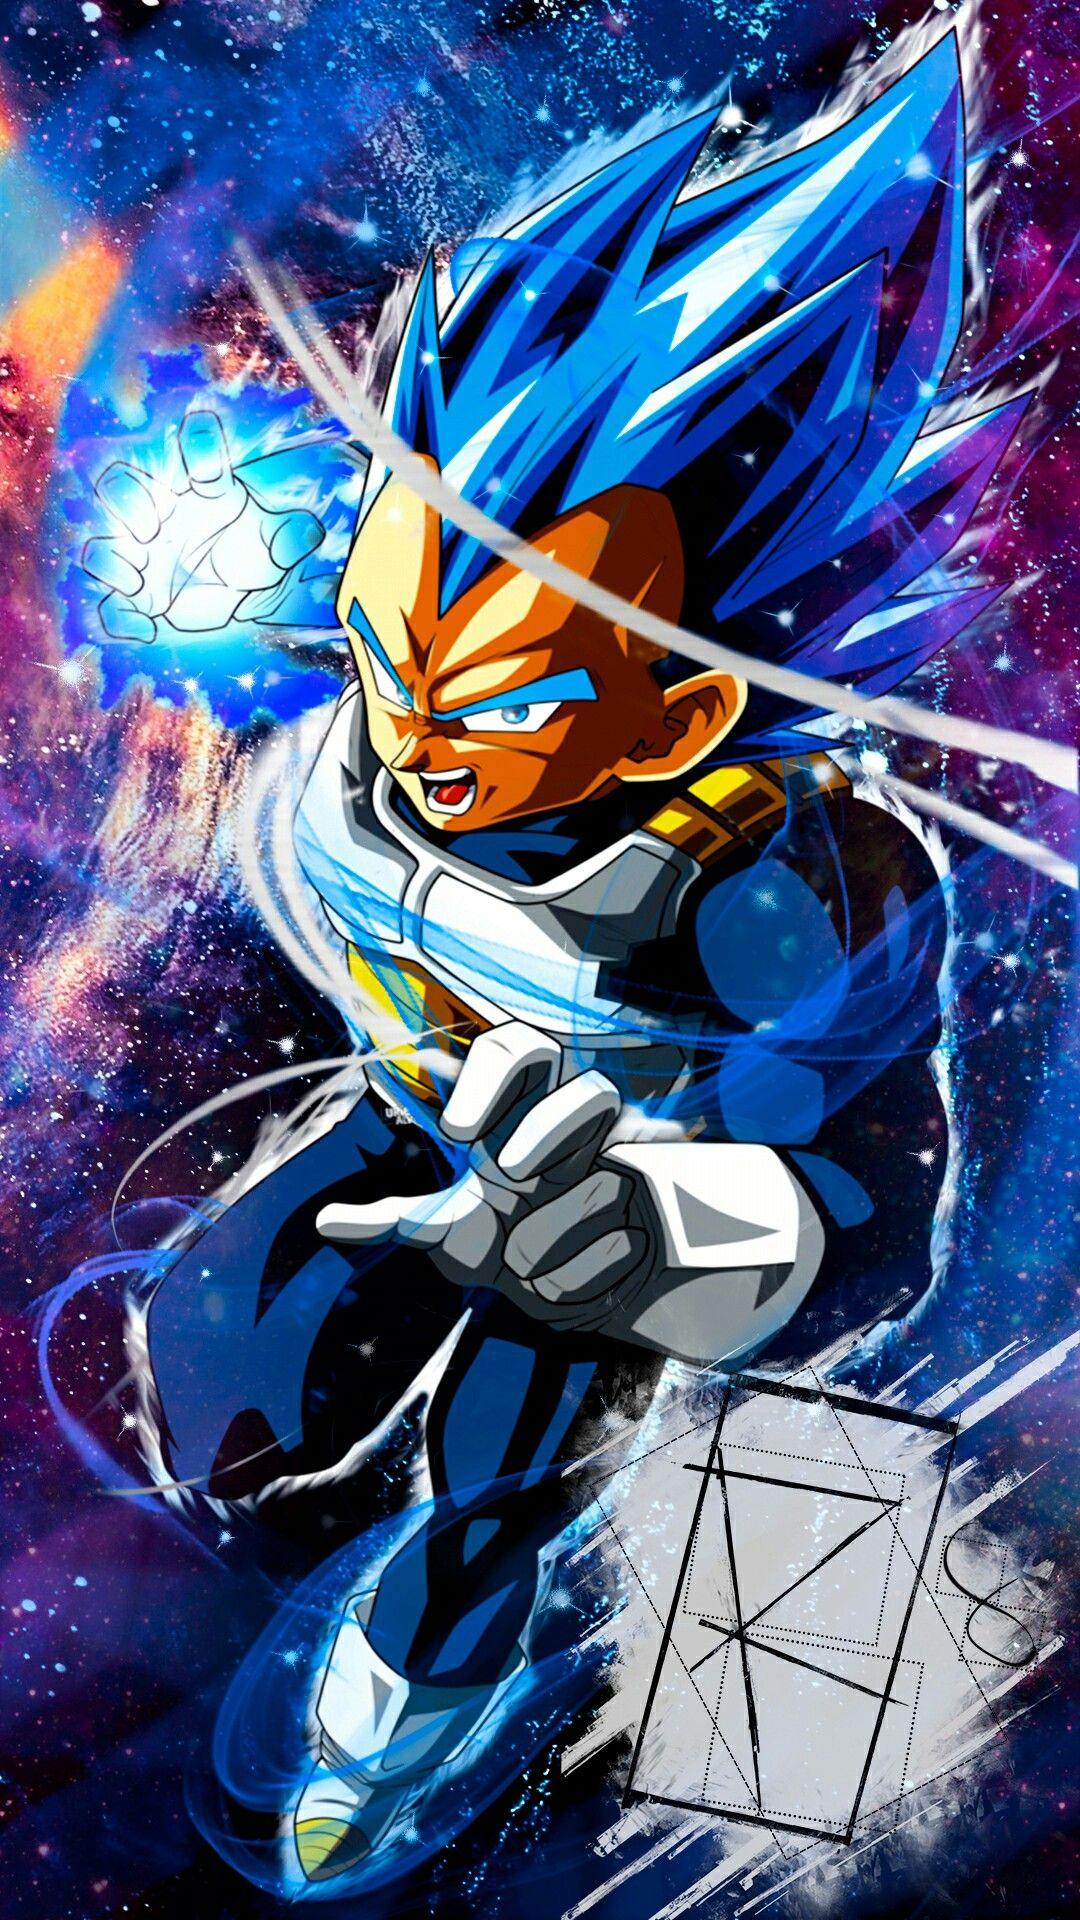 Vegeta SSJ Blue Full Power (Universo 7) | Dragón ball ...